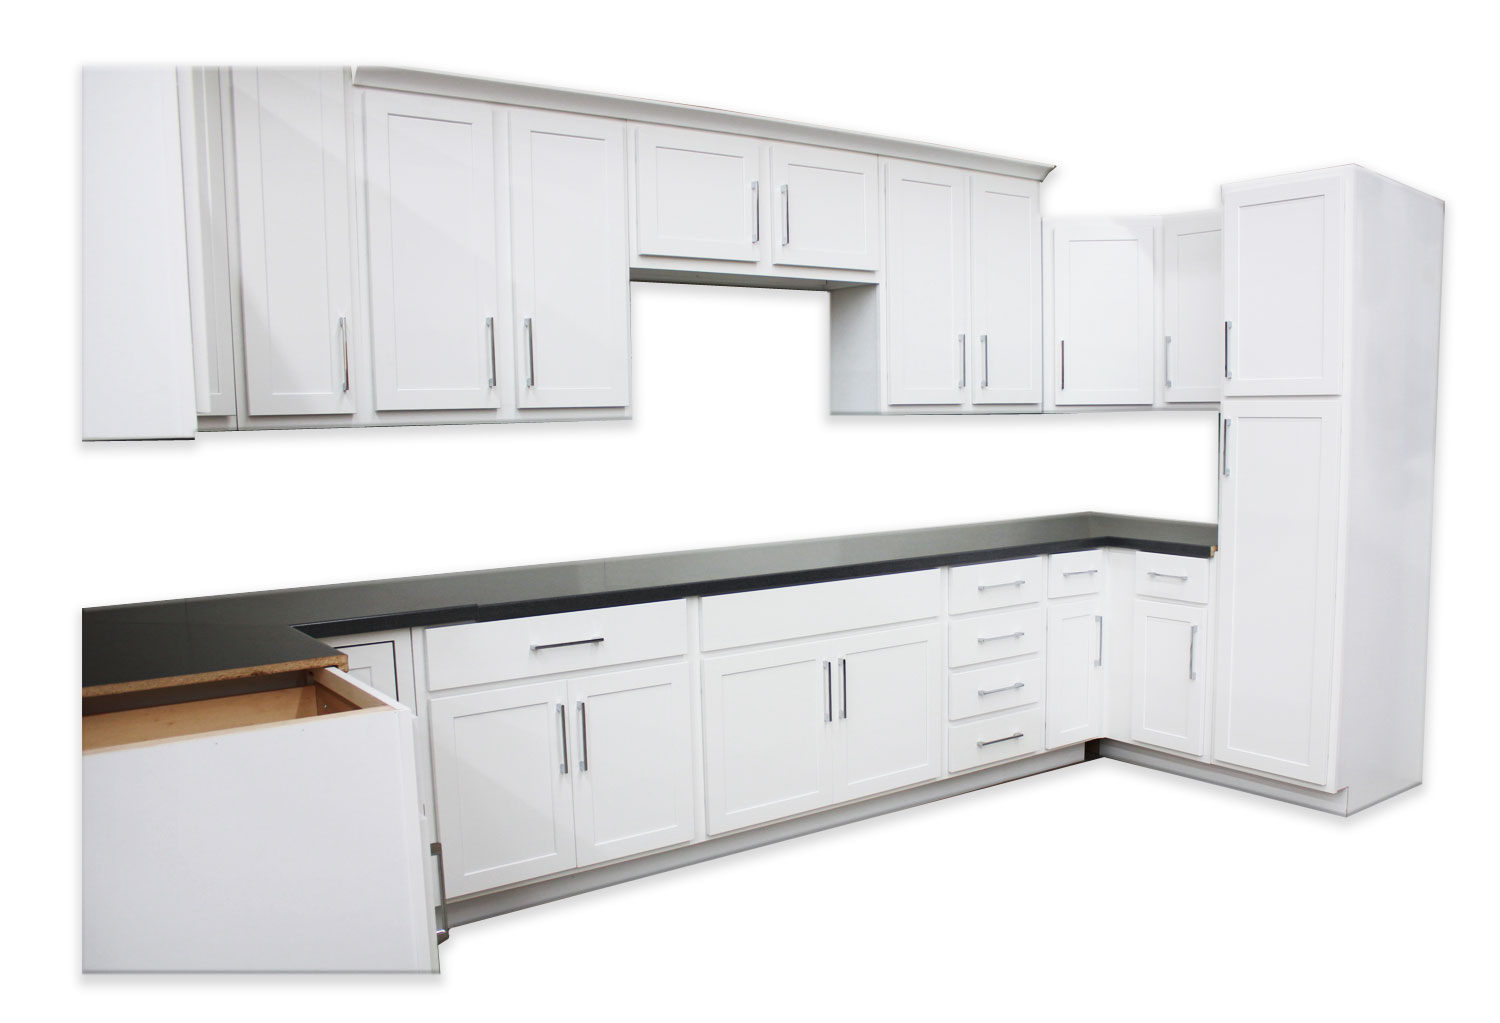 shaker_white_painted_kitchen_cabinets.jpg